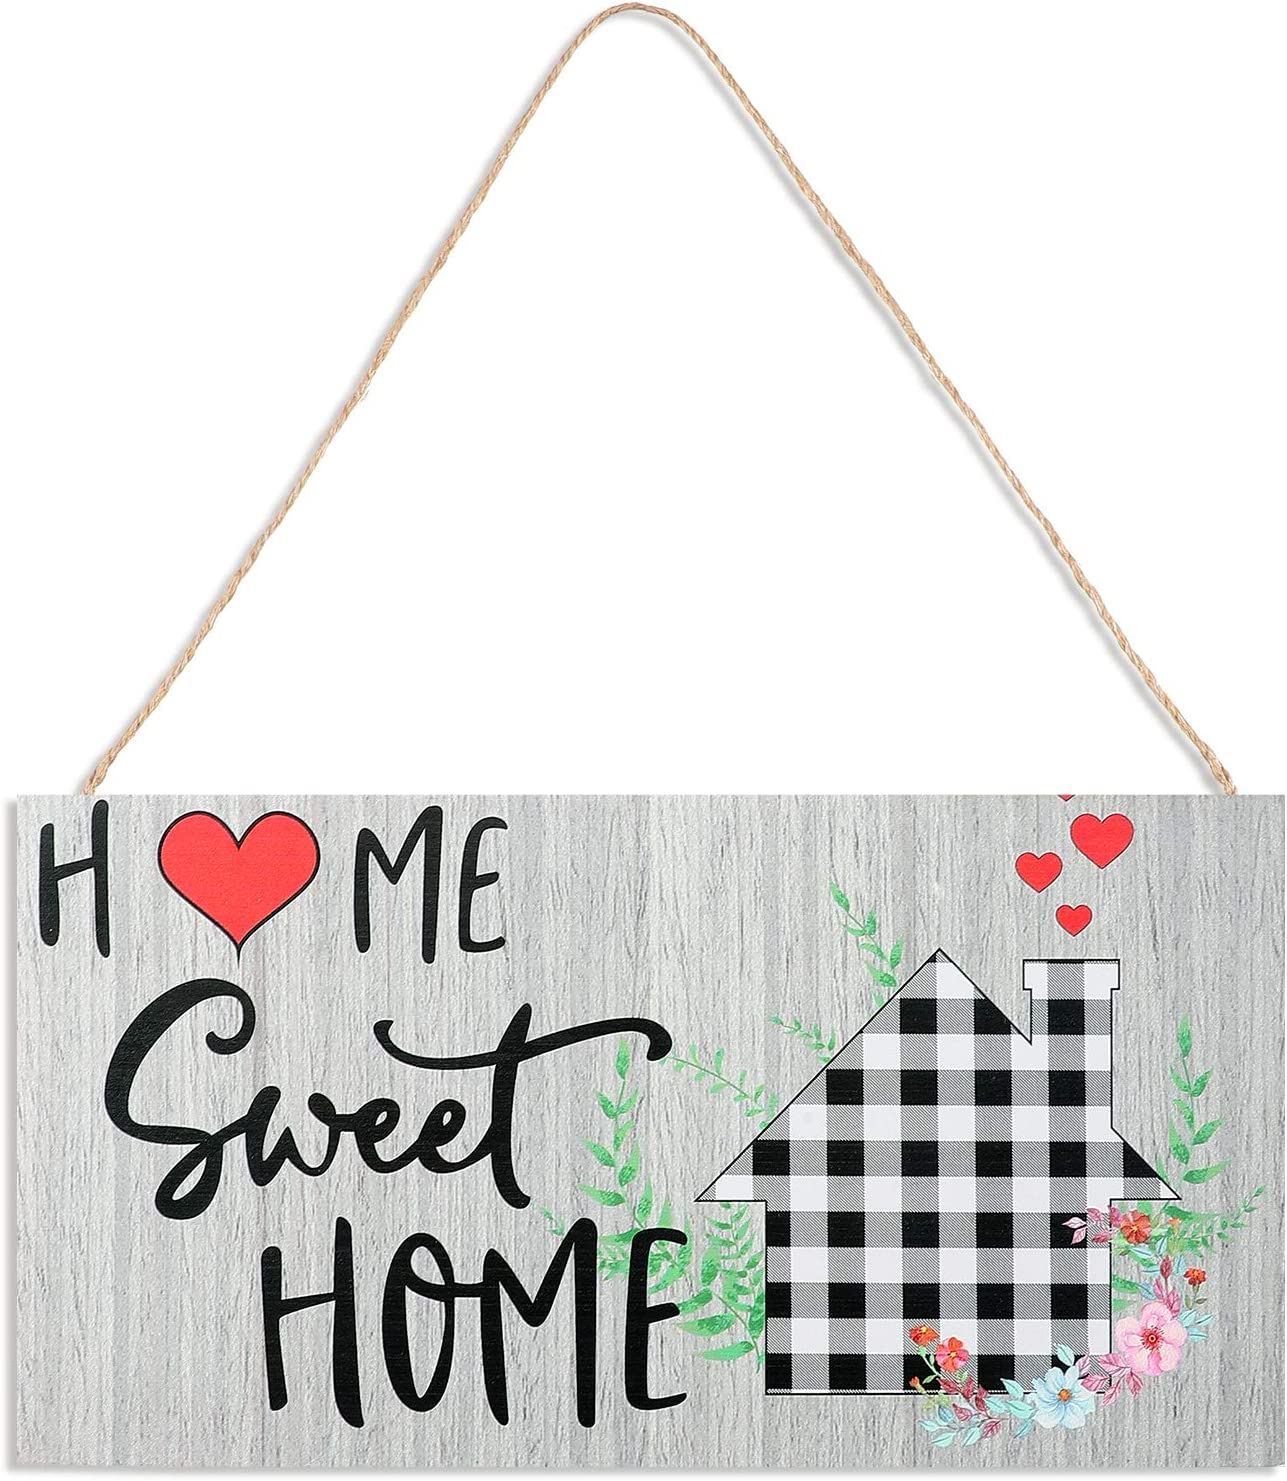 Welcome Sign Front Door Decor Home Sweet Home Sign Rustic Sweet Home Decor Wood Sign Hanging Pallet Wood Sign Porch Decor for Farmhouse Home Decor (11.8 x 6.1 Inch, Light Gray)